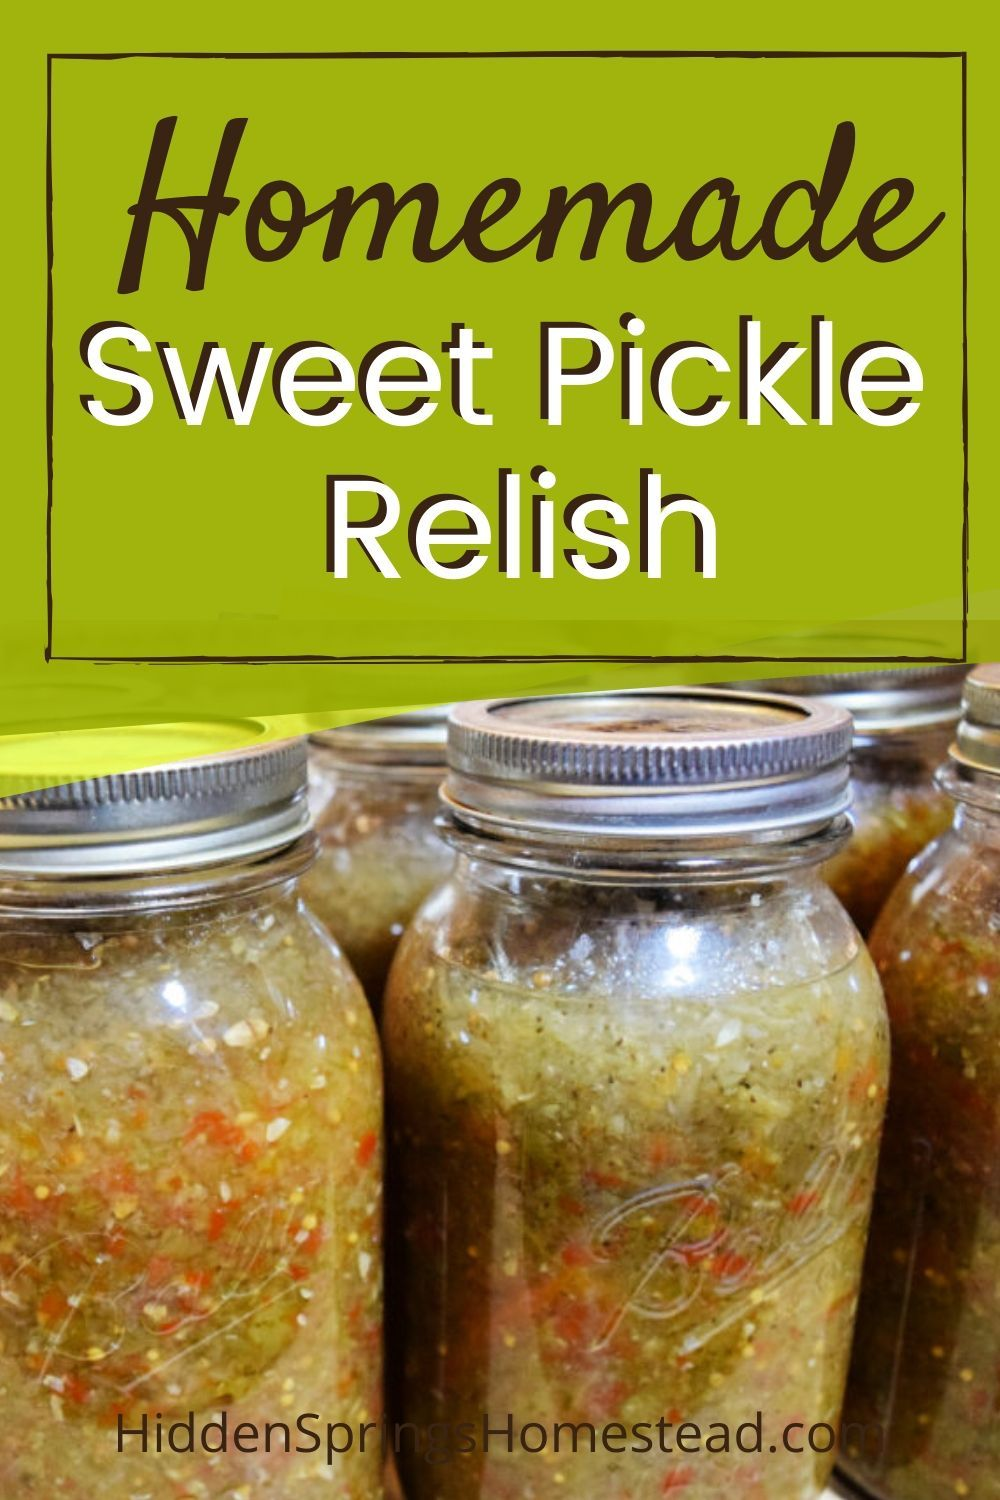 Easy Sweet Pickle Relish Recipe Sweet Pickles Relish Recipes Pickle Relish Recipe